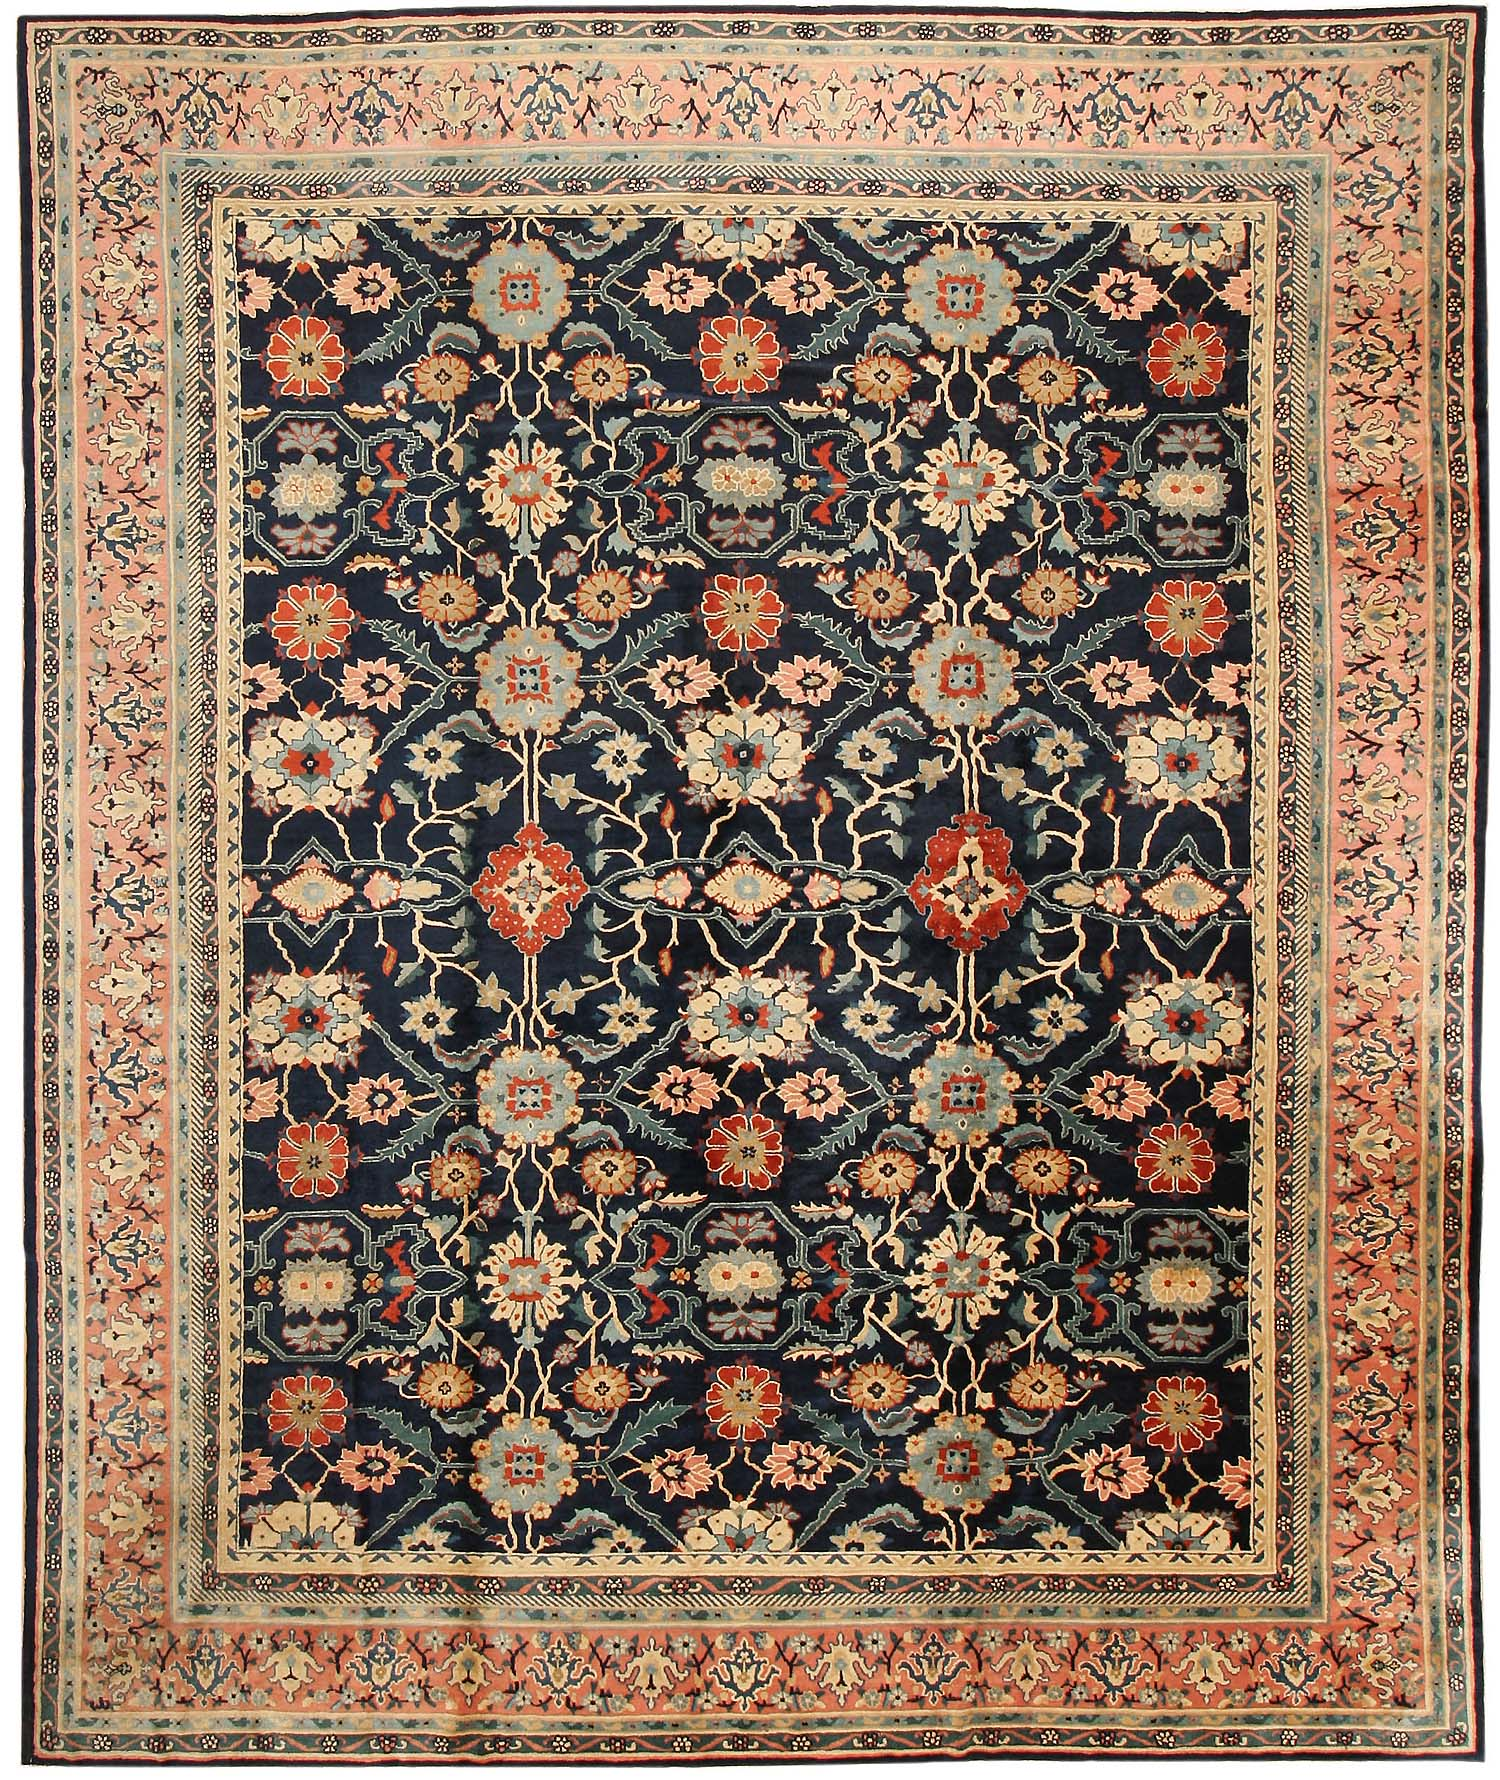 Antique Oriental Rugs Com: Antique Chinese Oriental Rugs # 43423 For Sale